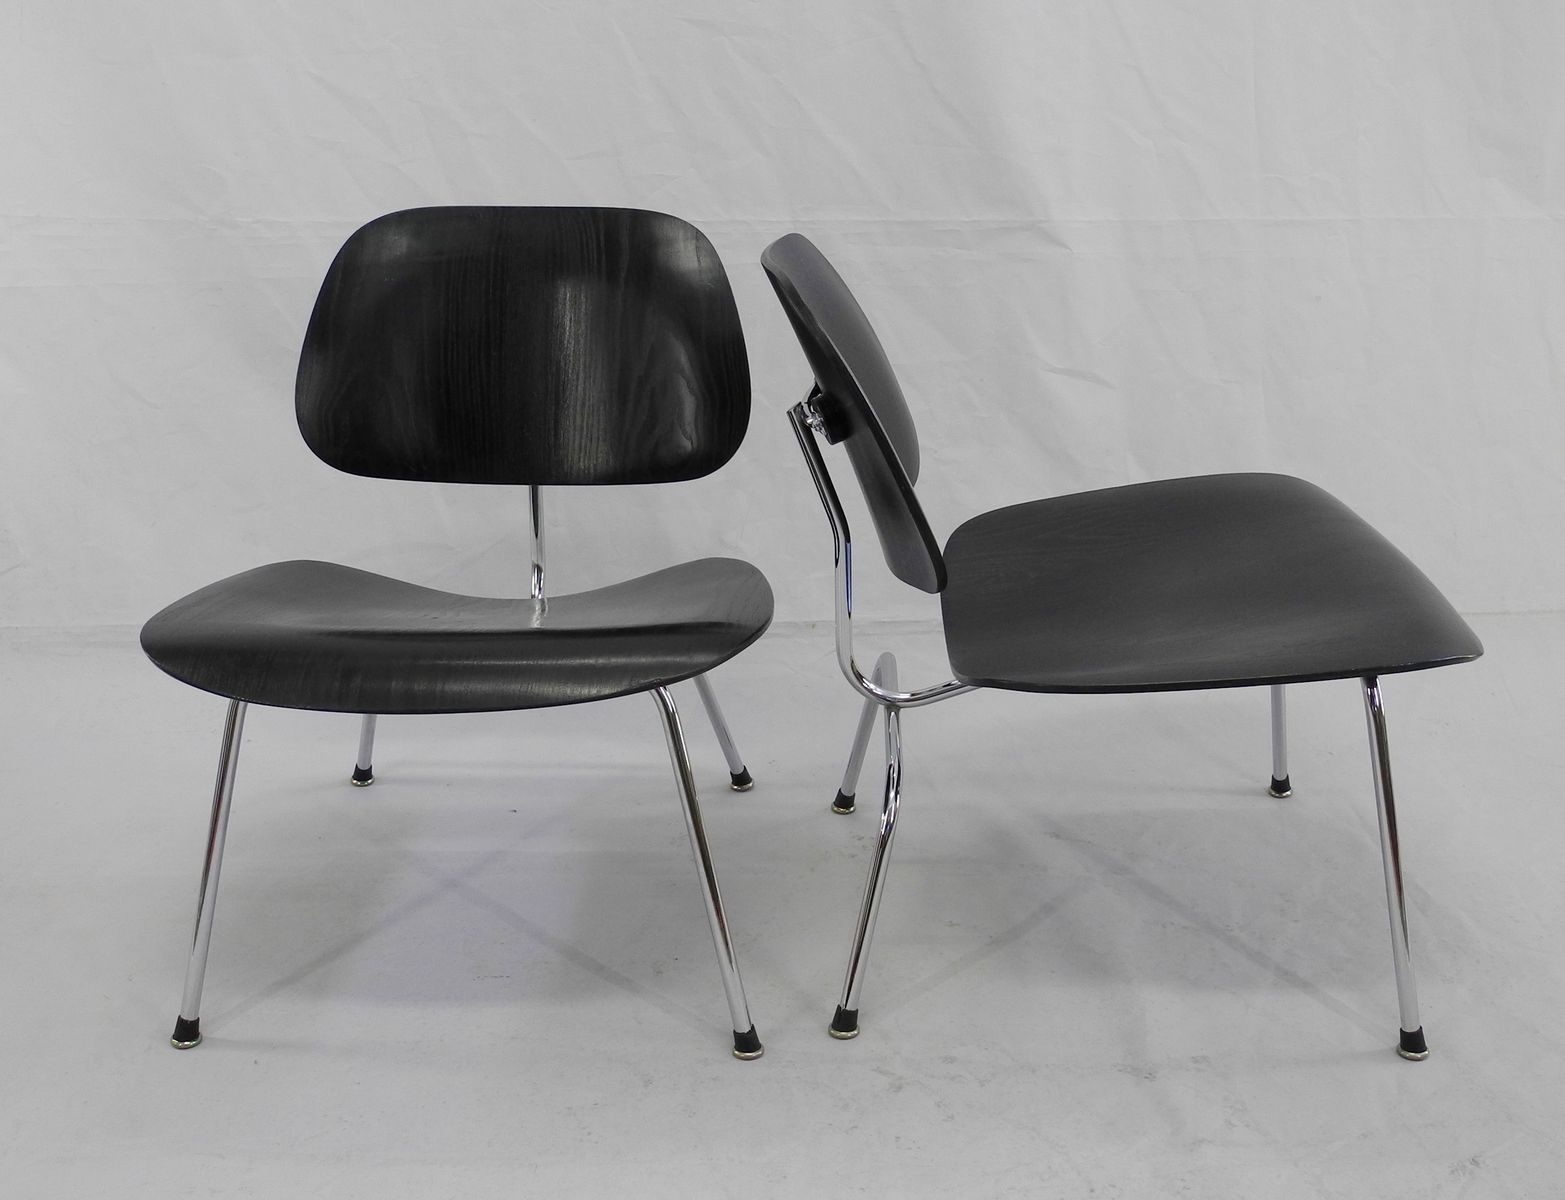 lcm chairs by charles ray eames for herman miller set of 2 for sale at pamono. Black Bedroom Furniture Sets. Home Design Ideas